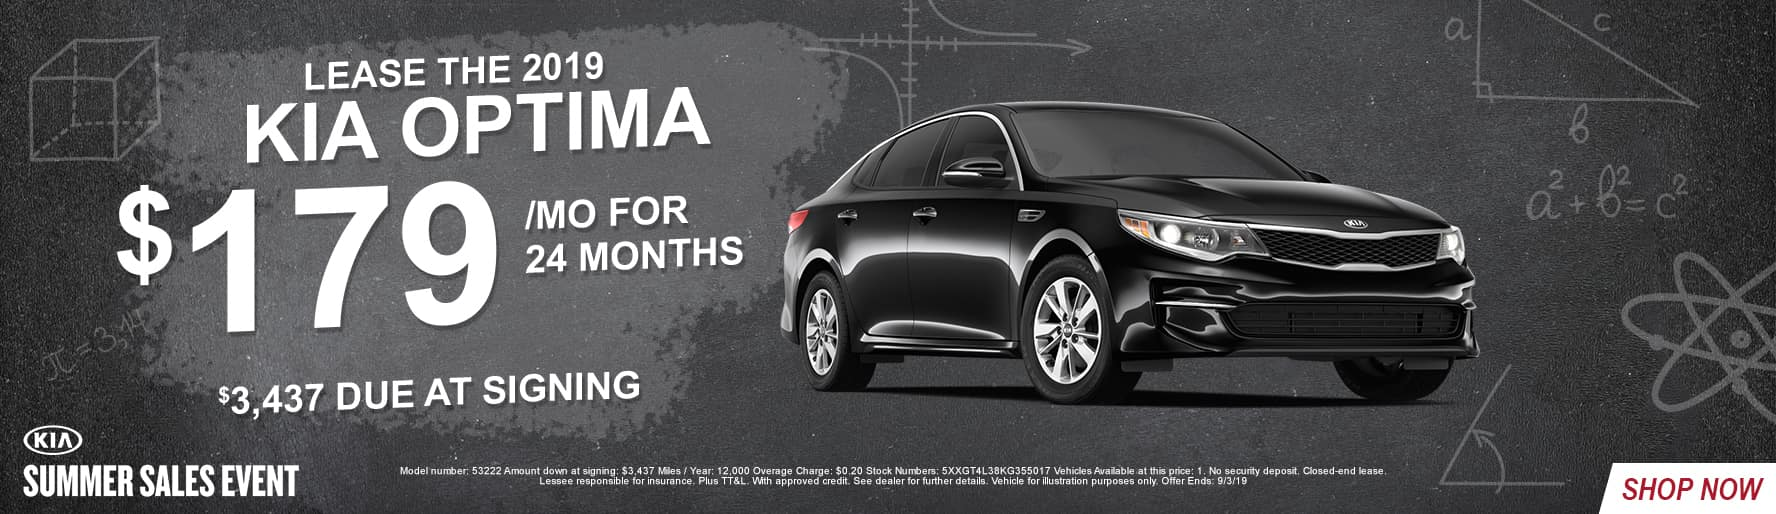 2019_Kia_South_Austin_Optima_Lease_Offers